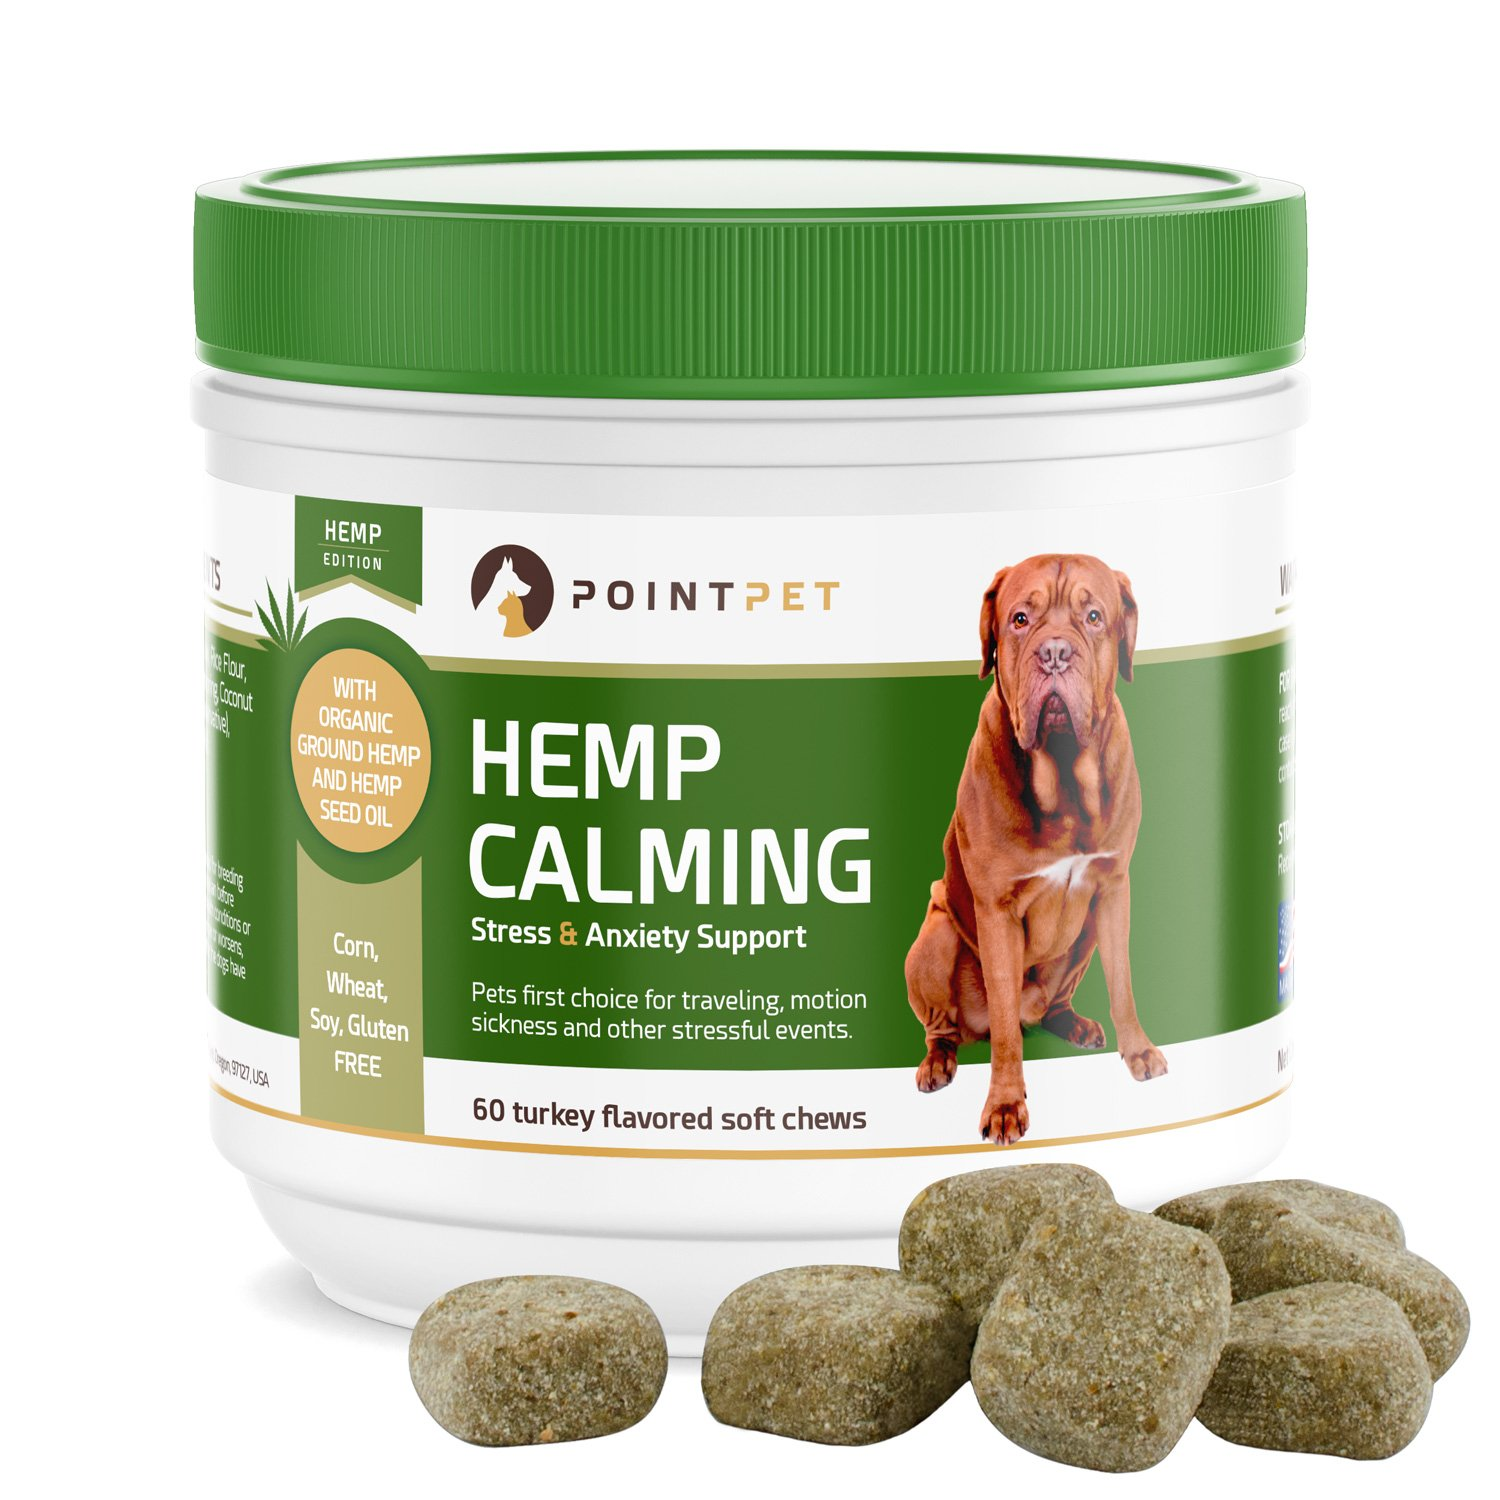 POINTPET Stress and Anxiety Relief for Dogs, Natural Calming Treats with Organic Hemp Oil, Helps with Separation, Travel and Motion Sickness, Fireworks, Dog Anxiety Supplement, 60 Soft Chews